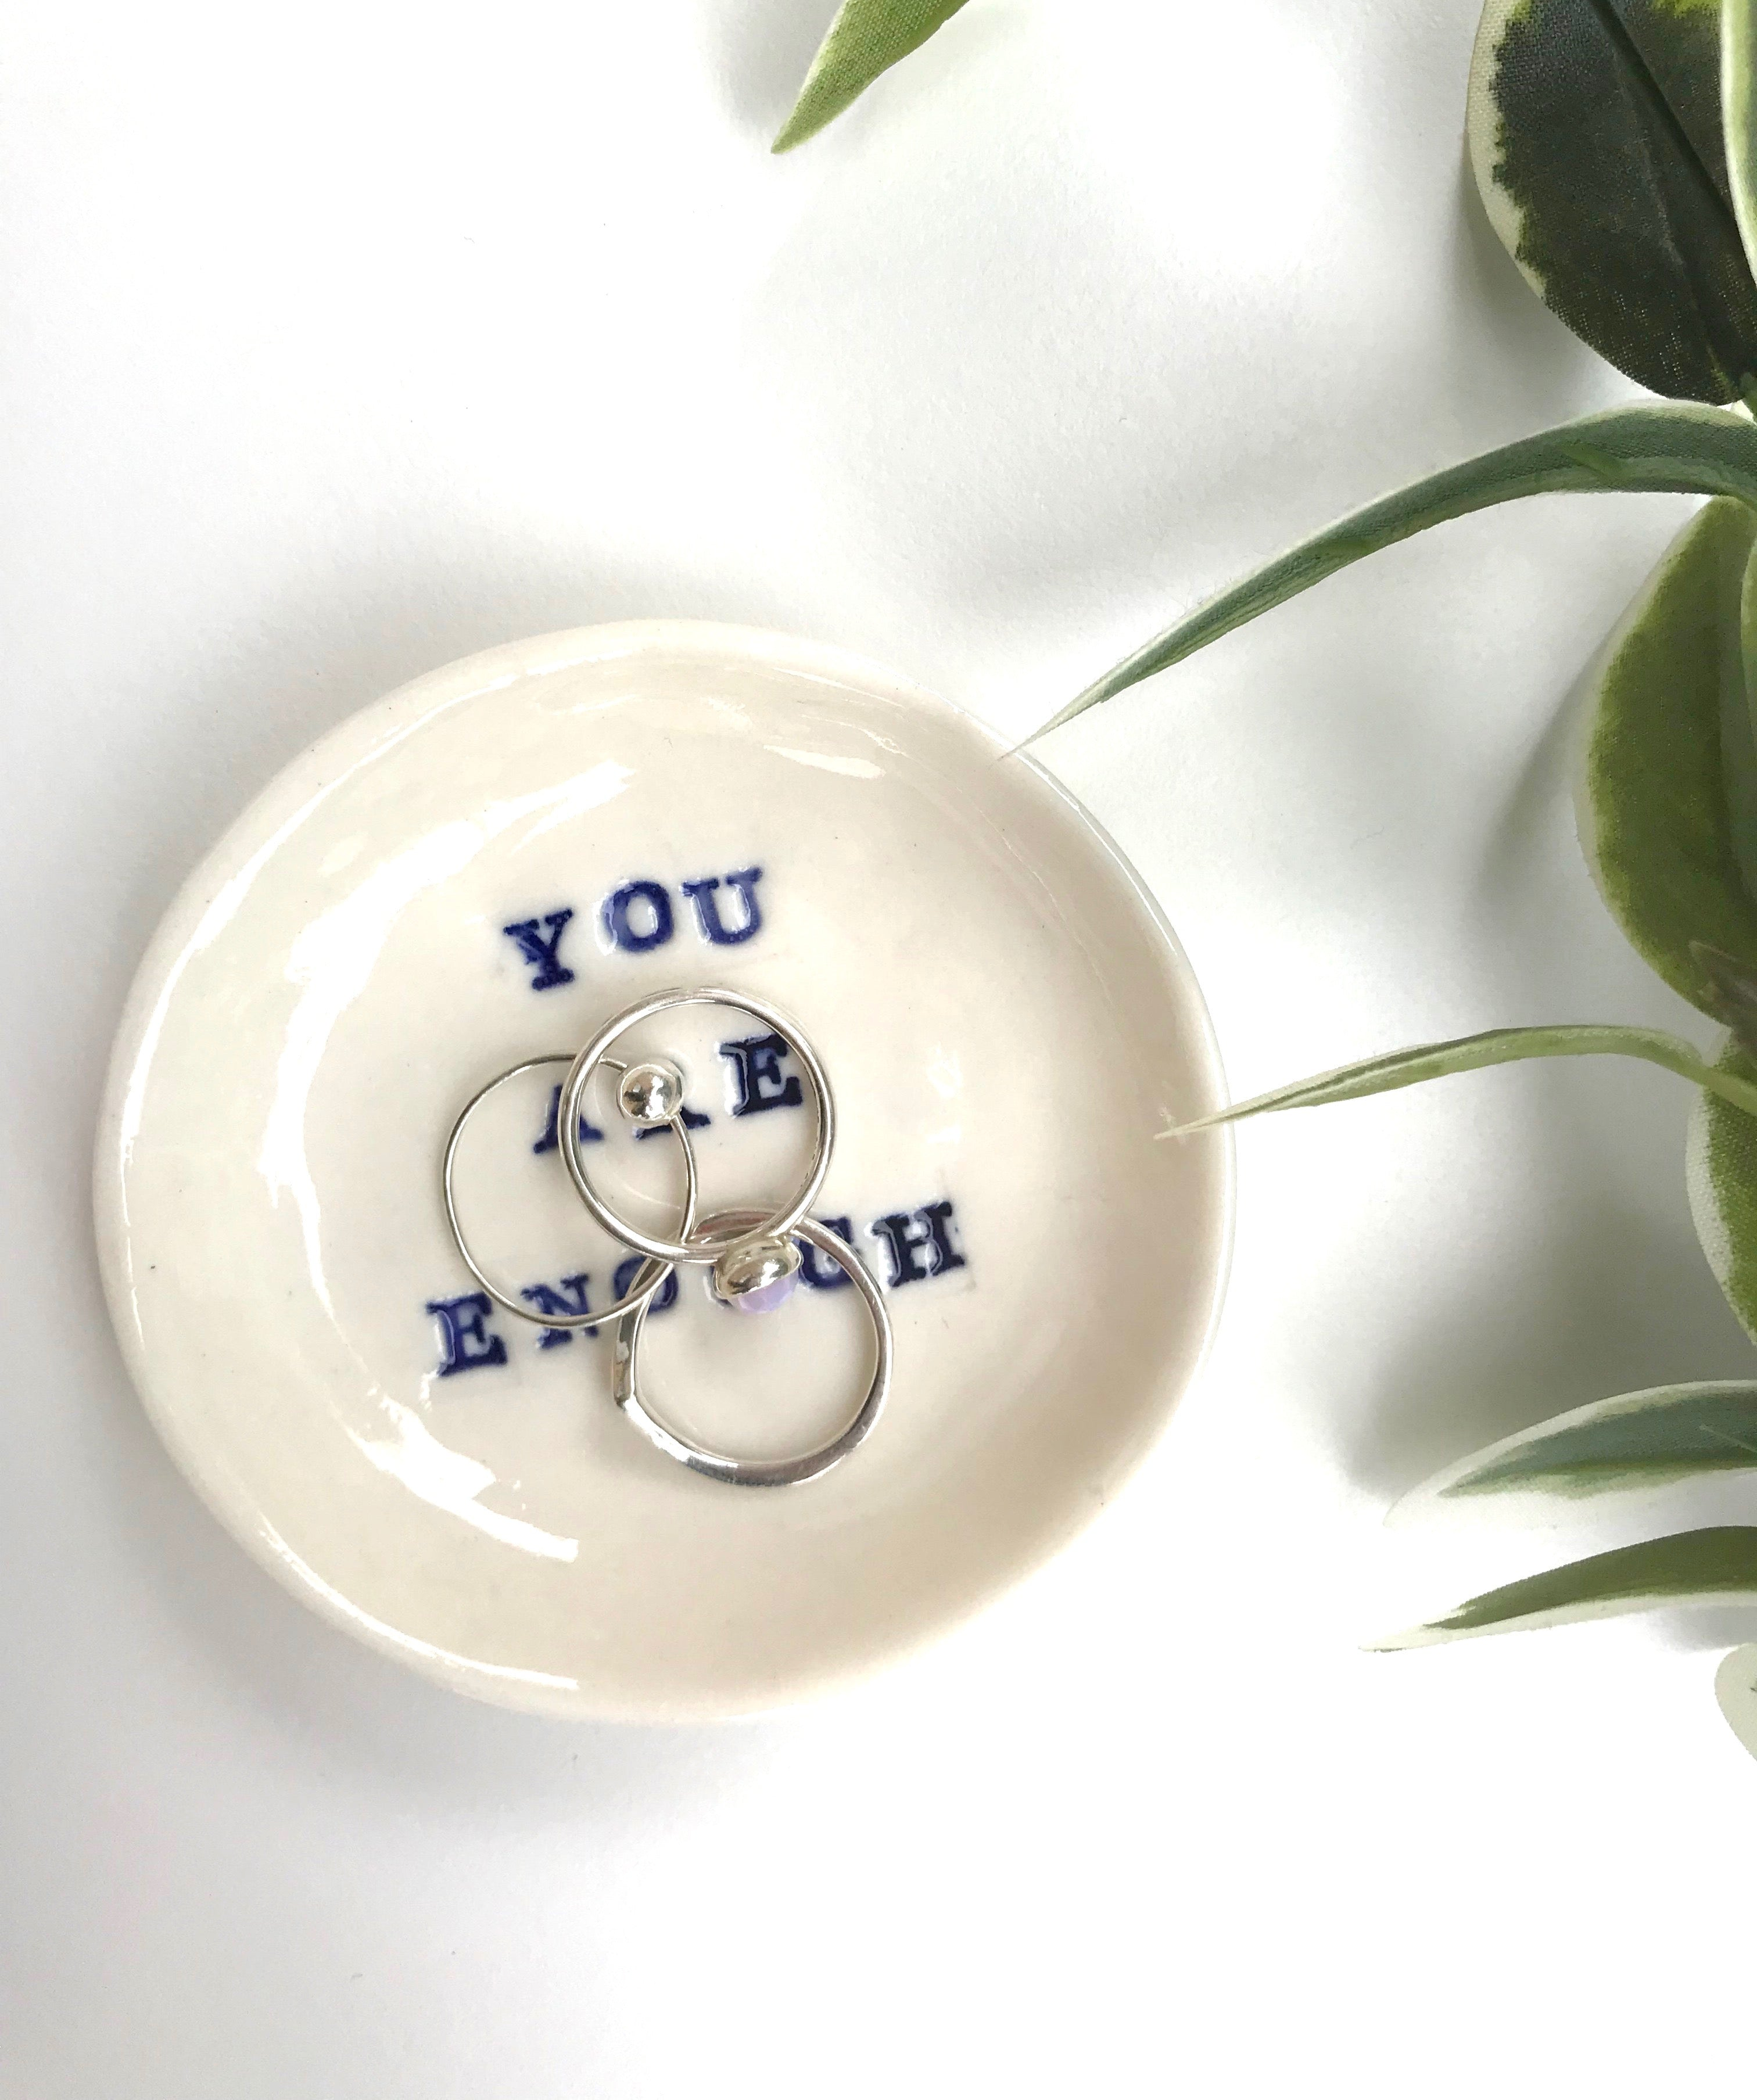 Trinket Dish with Affirmation (Porcelain) - Tea4Two Art (3 Affirmations Available)